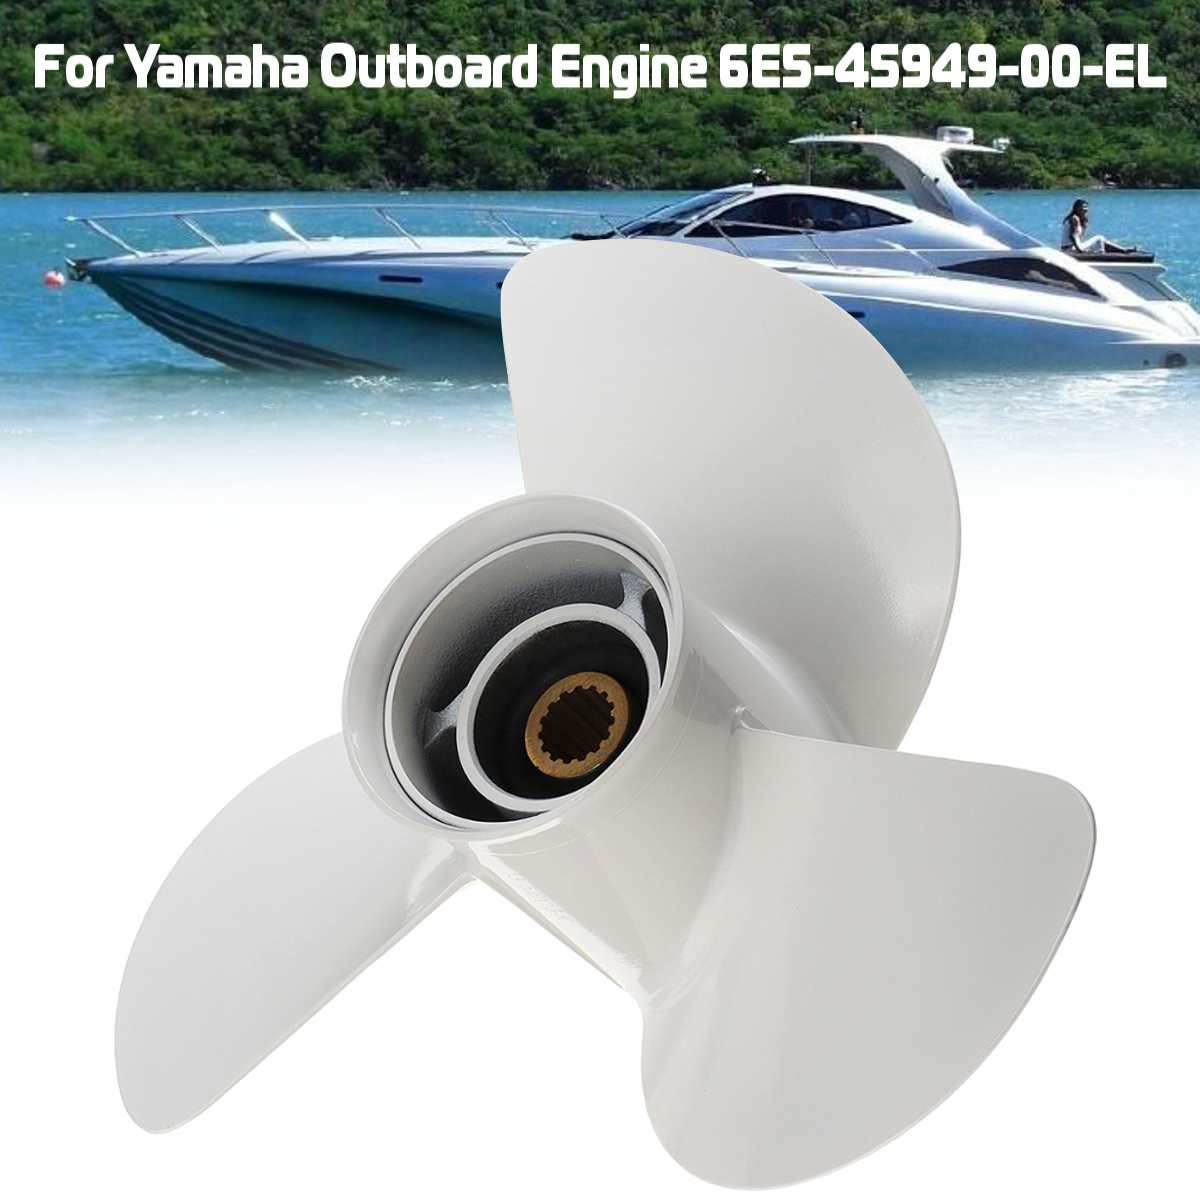 Aluminum Alloy Outboard Propeller 6E5-45949-00-EL 13 5/8 x 13 Fit For Yamaha 50-140HP 3 Blades R Rotation 15 Spline Tooths oversee propeller 6e5 45945 01 el 00 size 13 1 4x17 k for yamaha outboard motor motor 75hp 85hp 90hp 115hp 13 1 4x17 k page 8